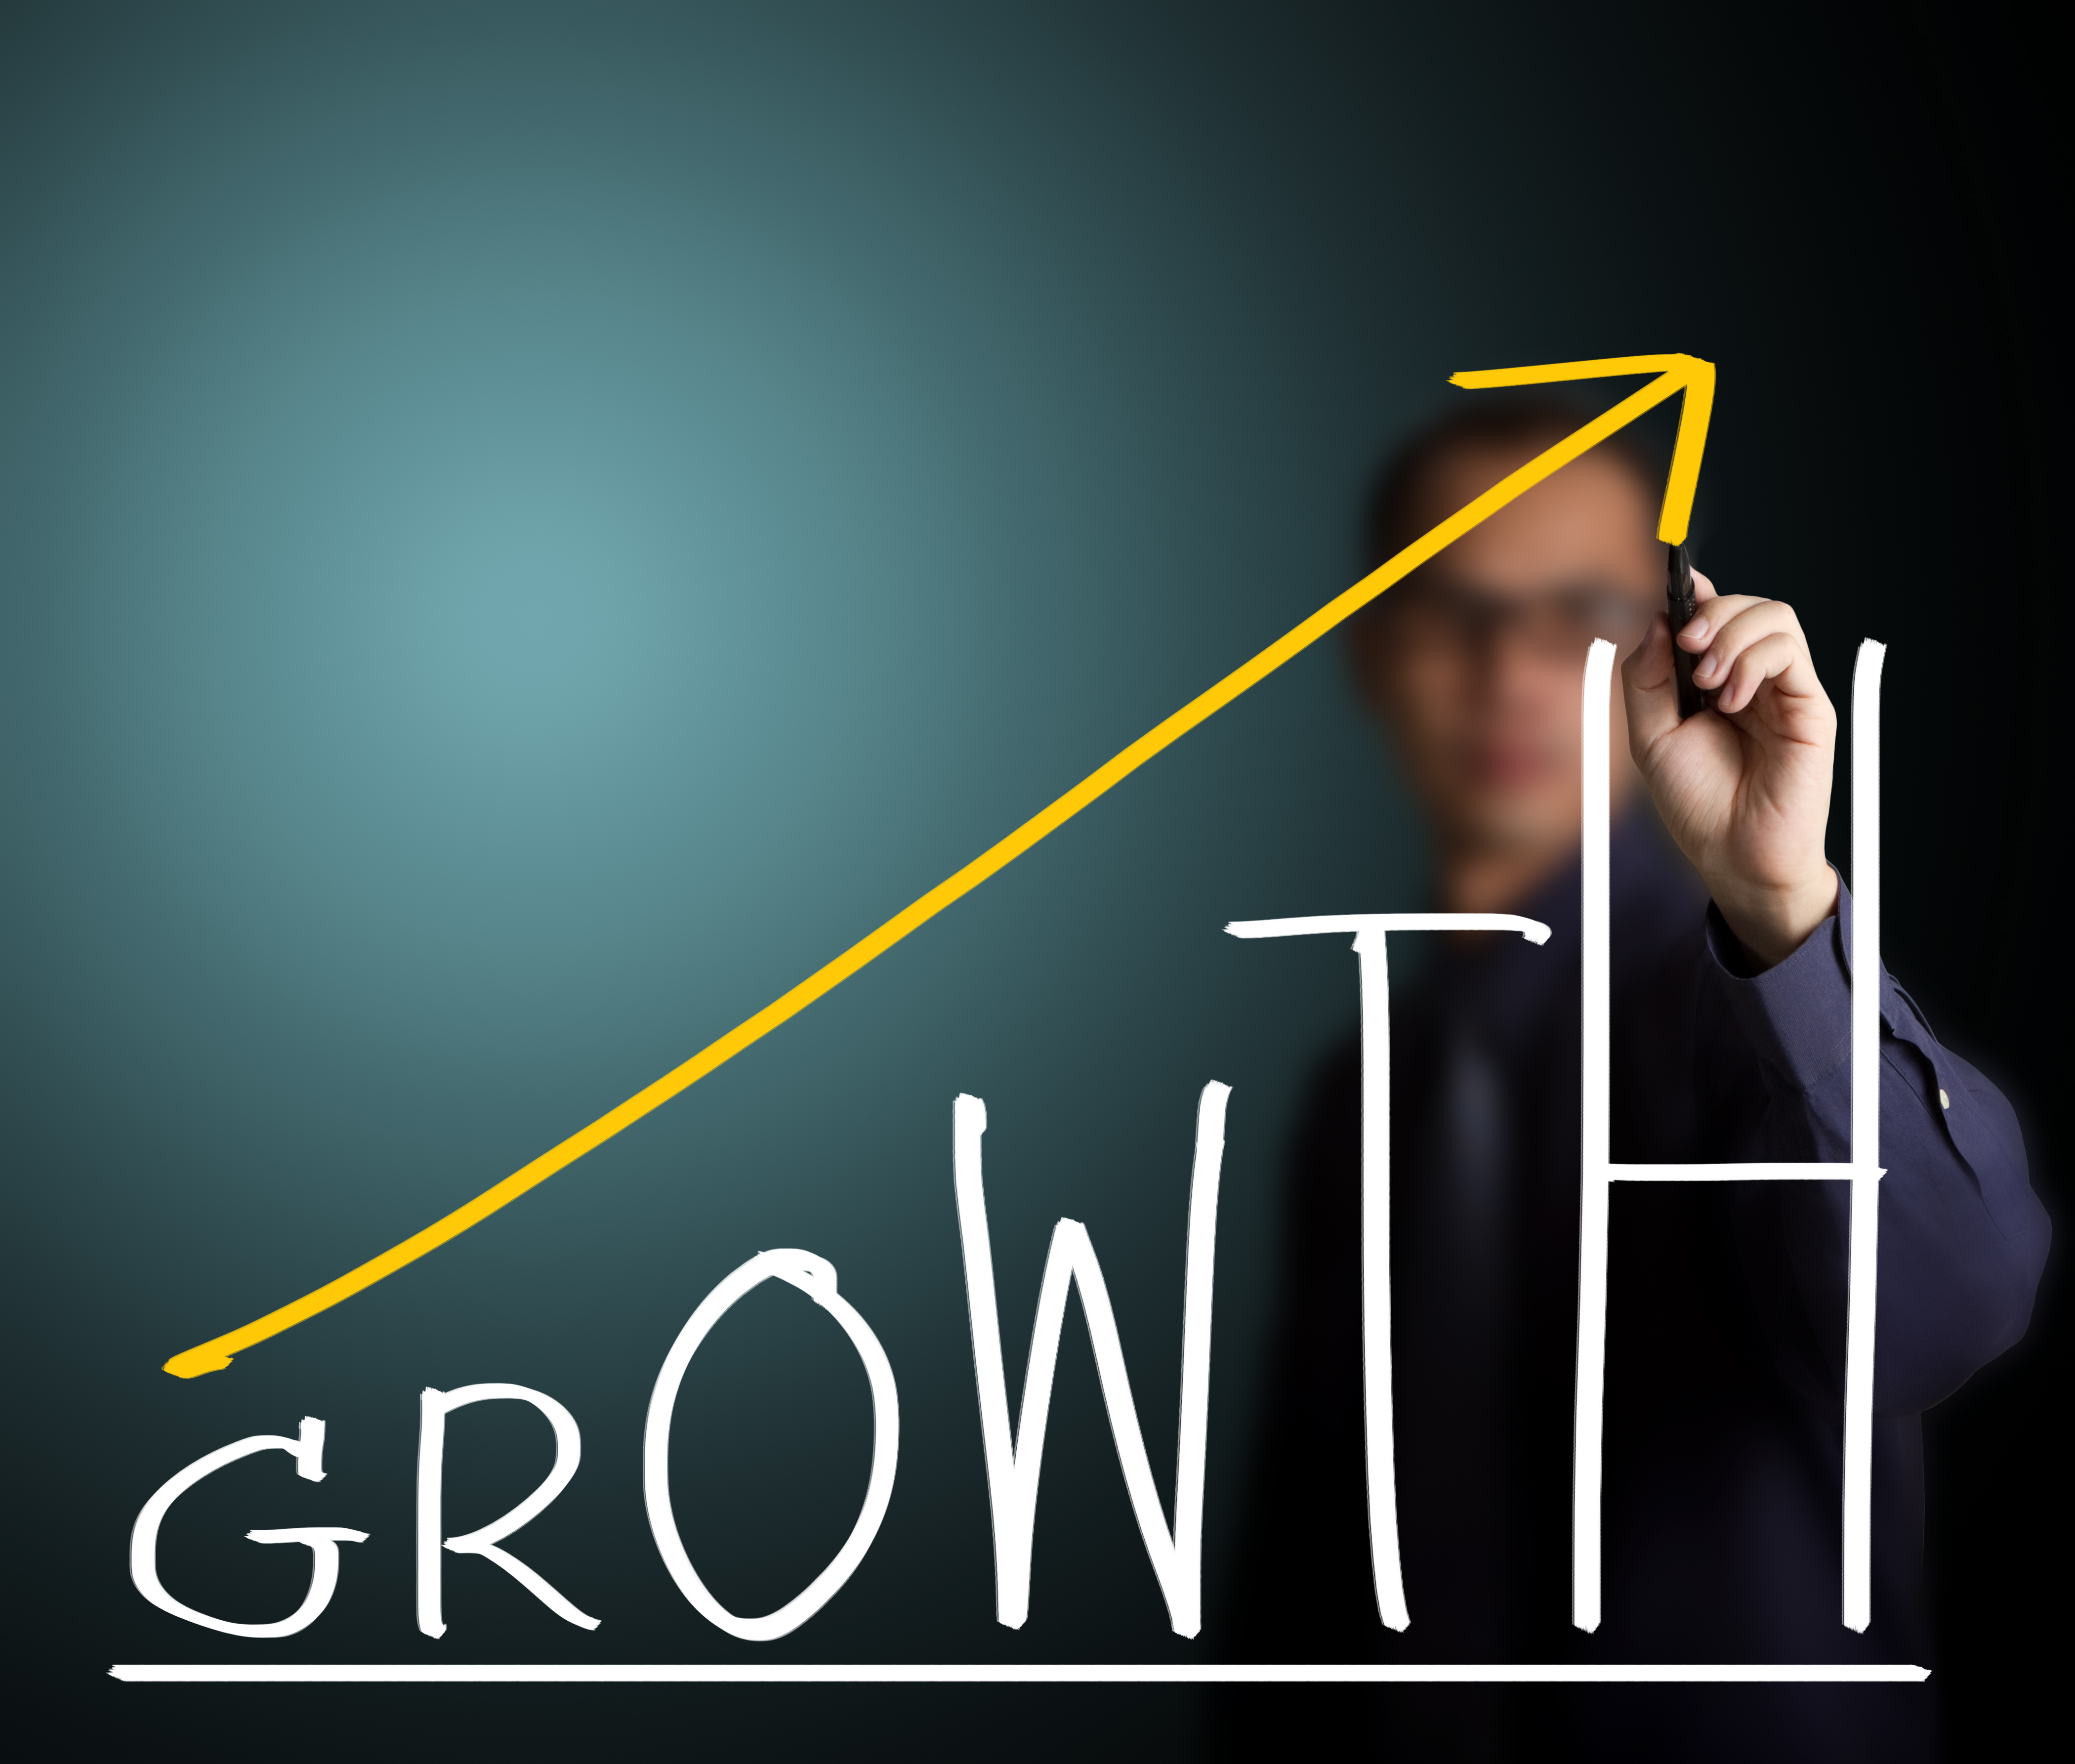 Think with a Growth mentality